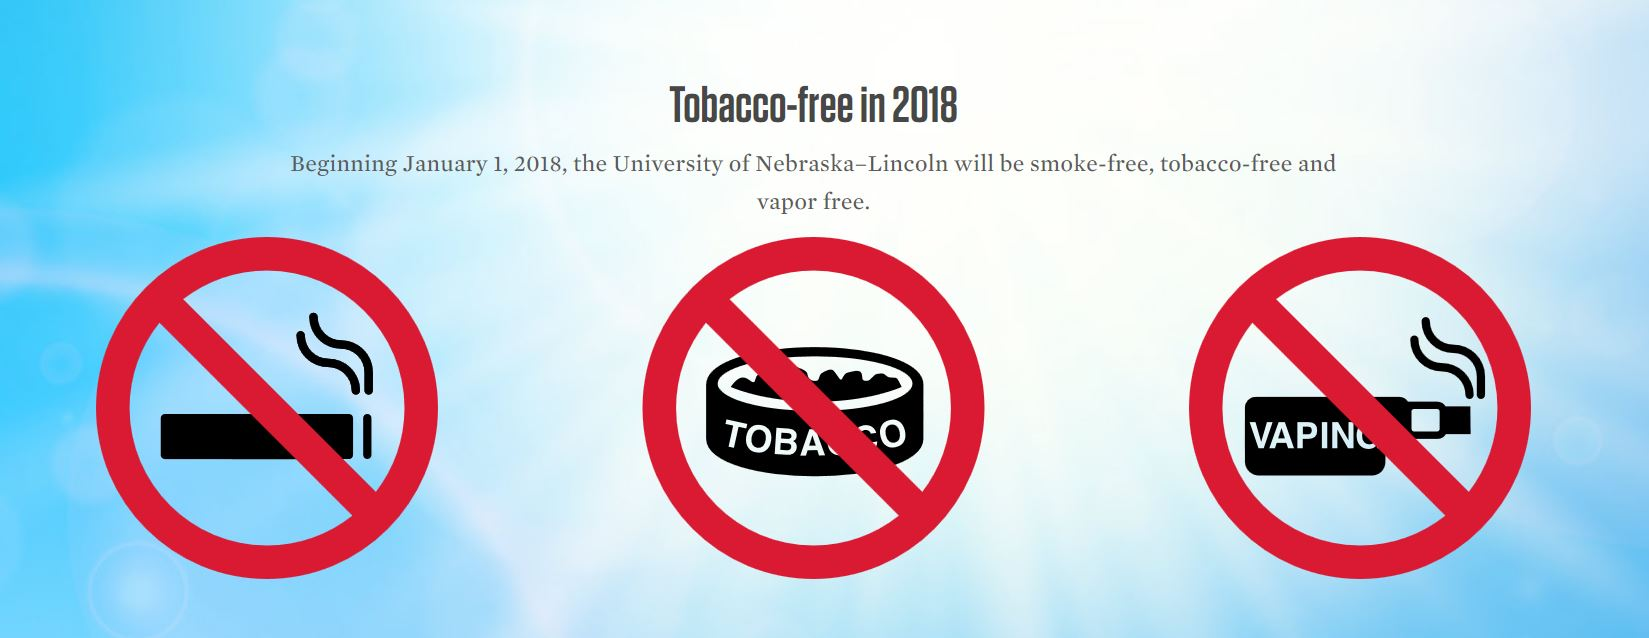 The university will go tobacco free on Jan. 1, 2018. | Courtesy image